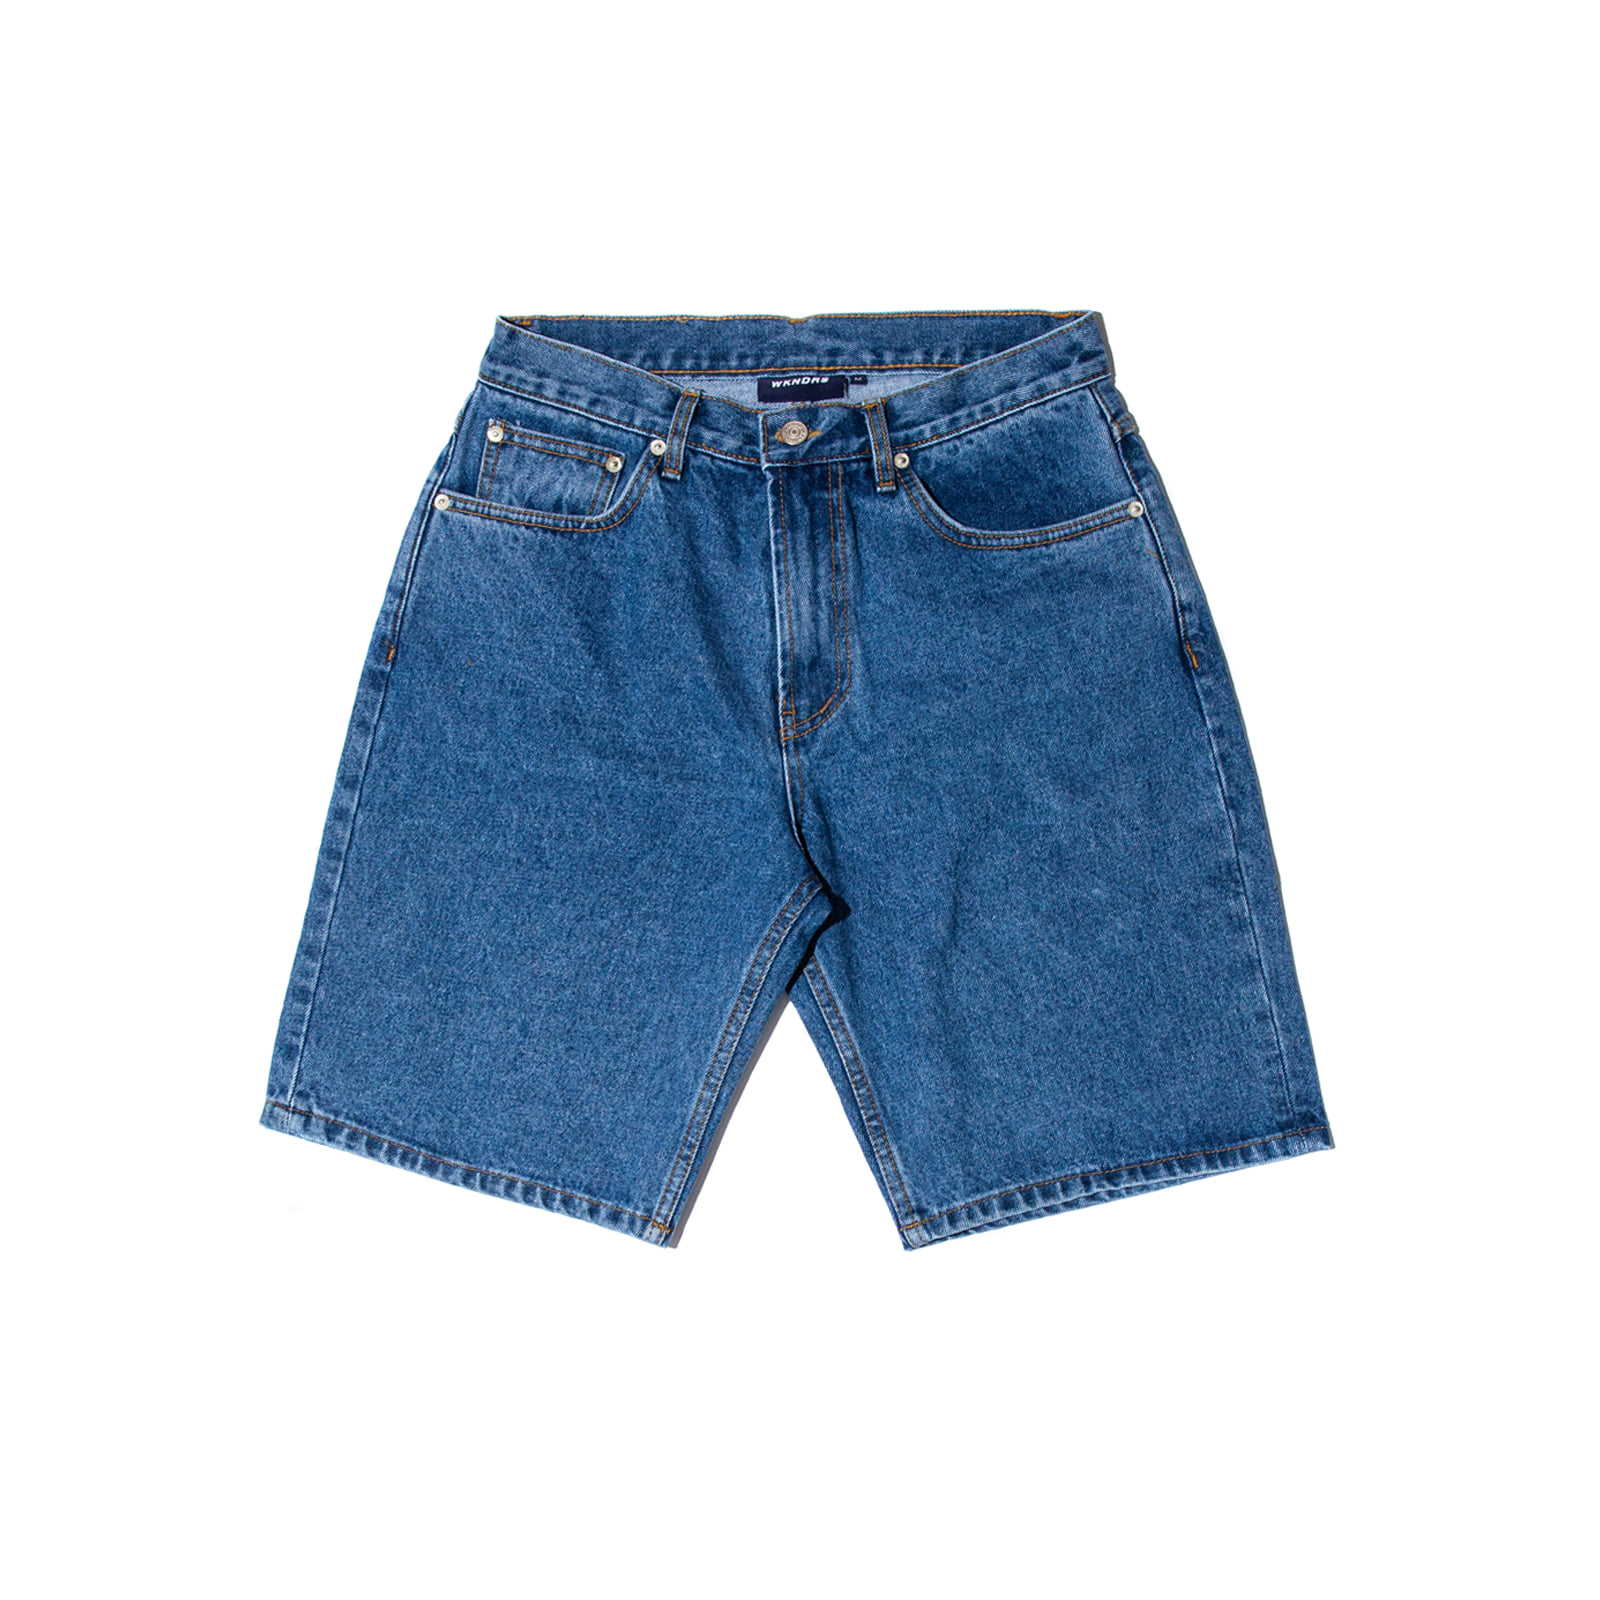 BASIC DENIM SHORTS (DENIM)